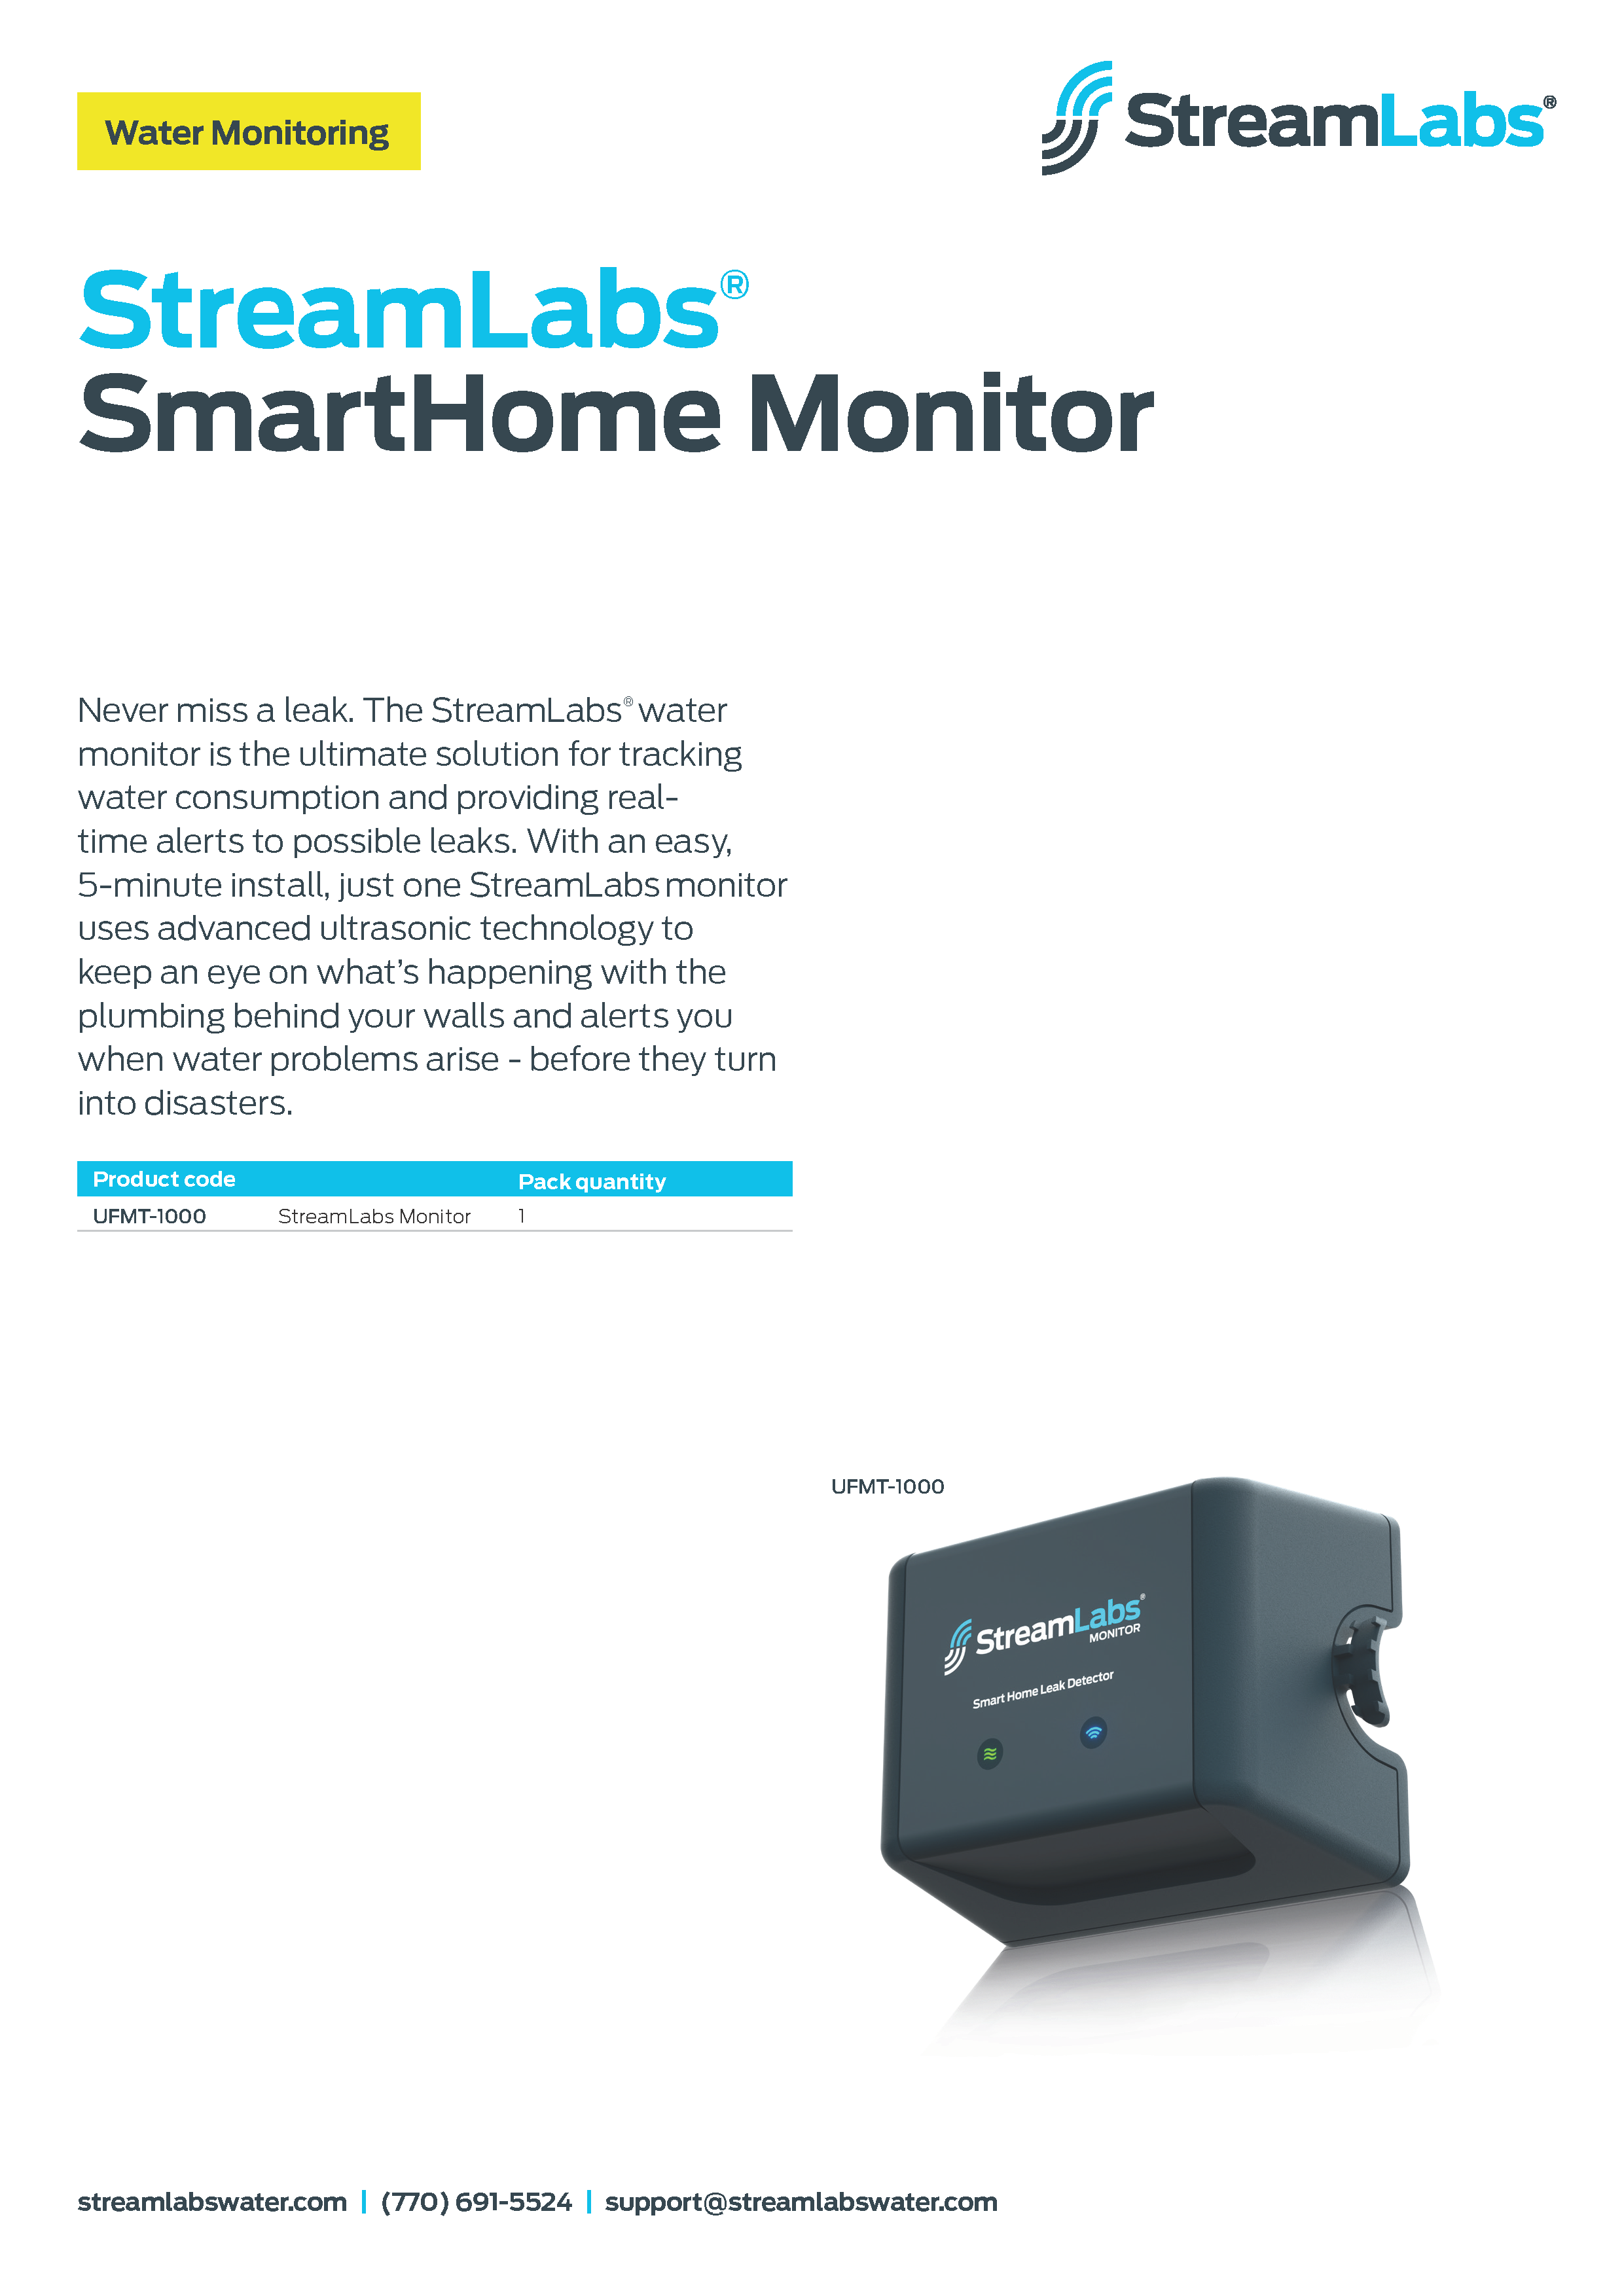 StreamLabs-SmartHome-Monitor_UFMT-1000_Page_1.png